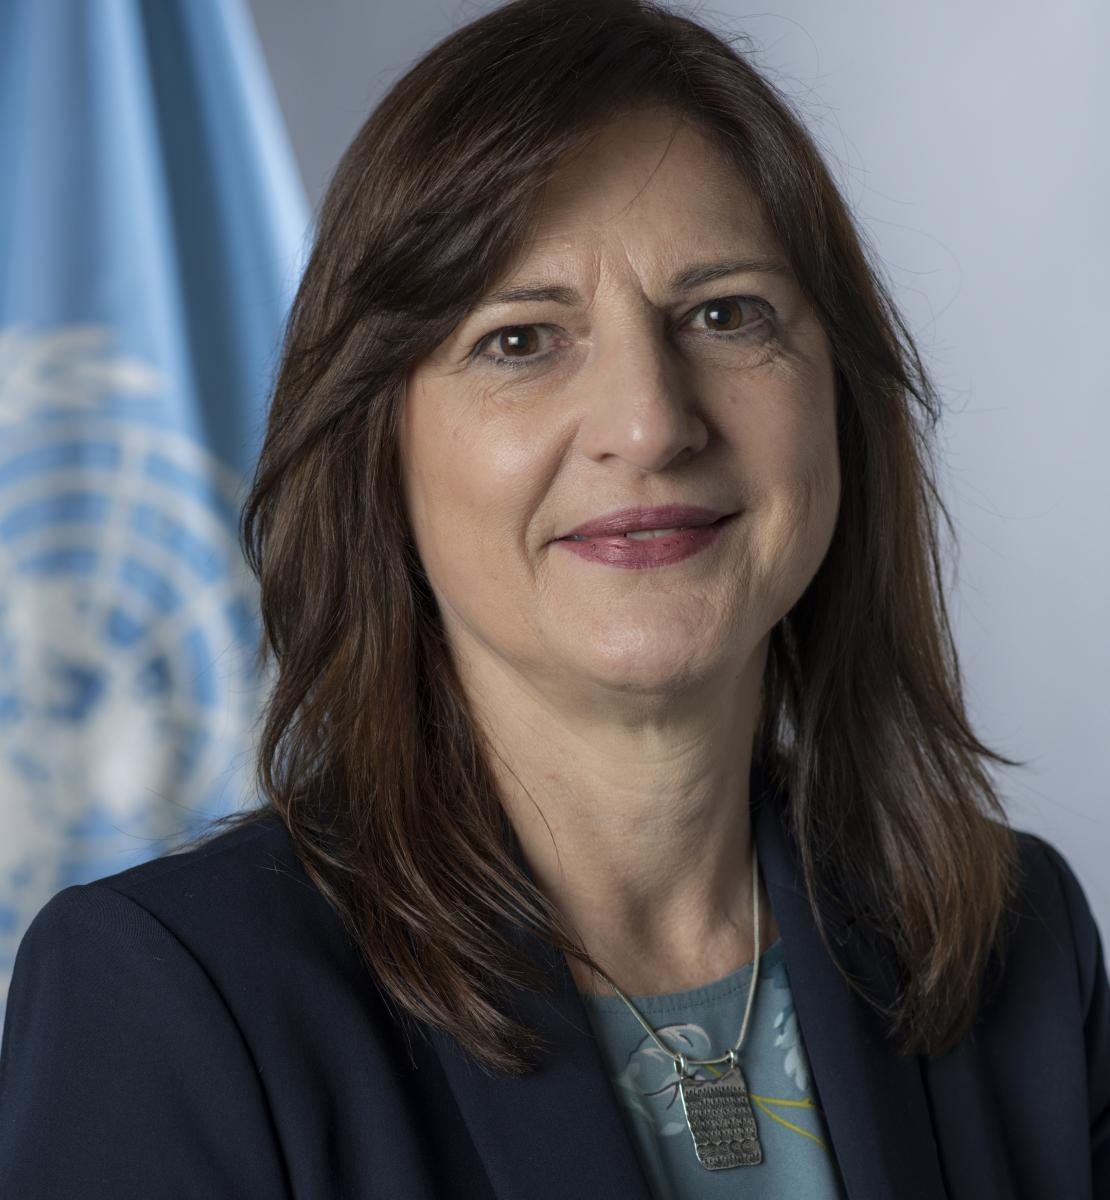 official photo of Susana Sottoli shows her standing in front of the UN flag.